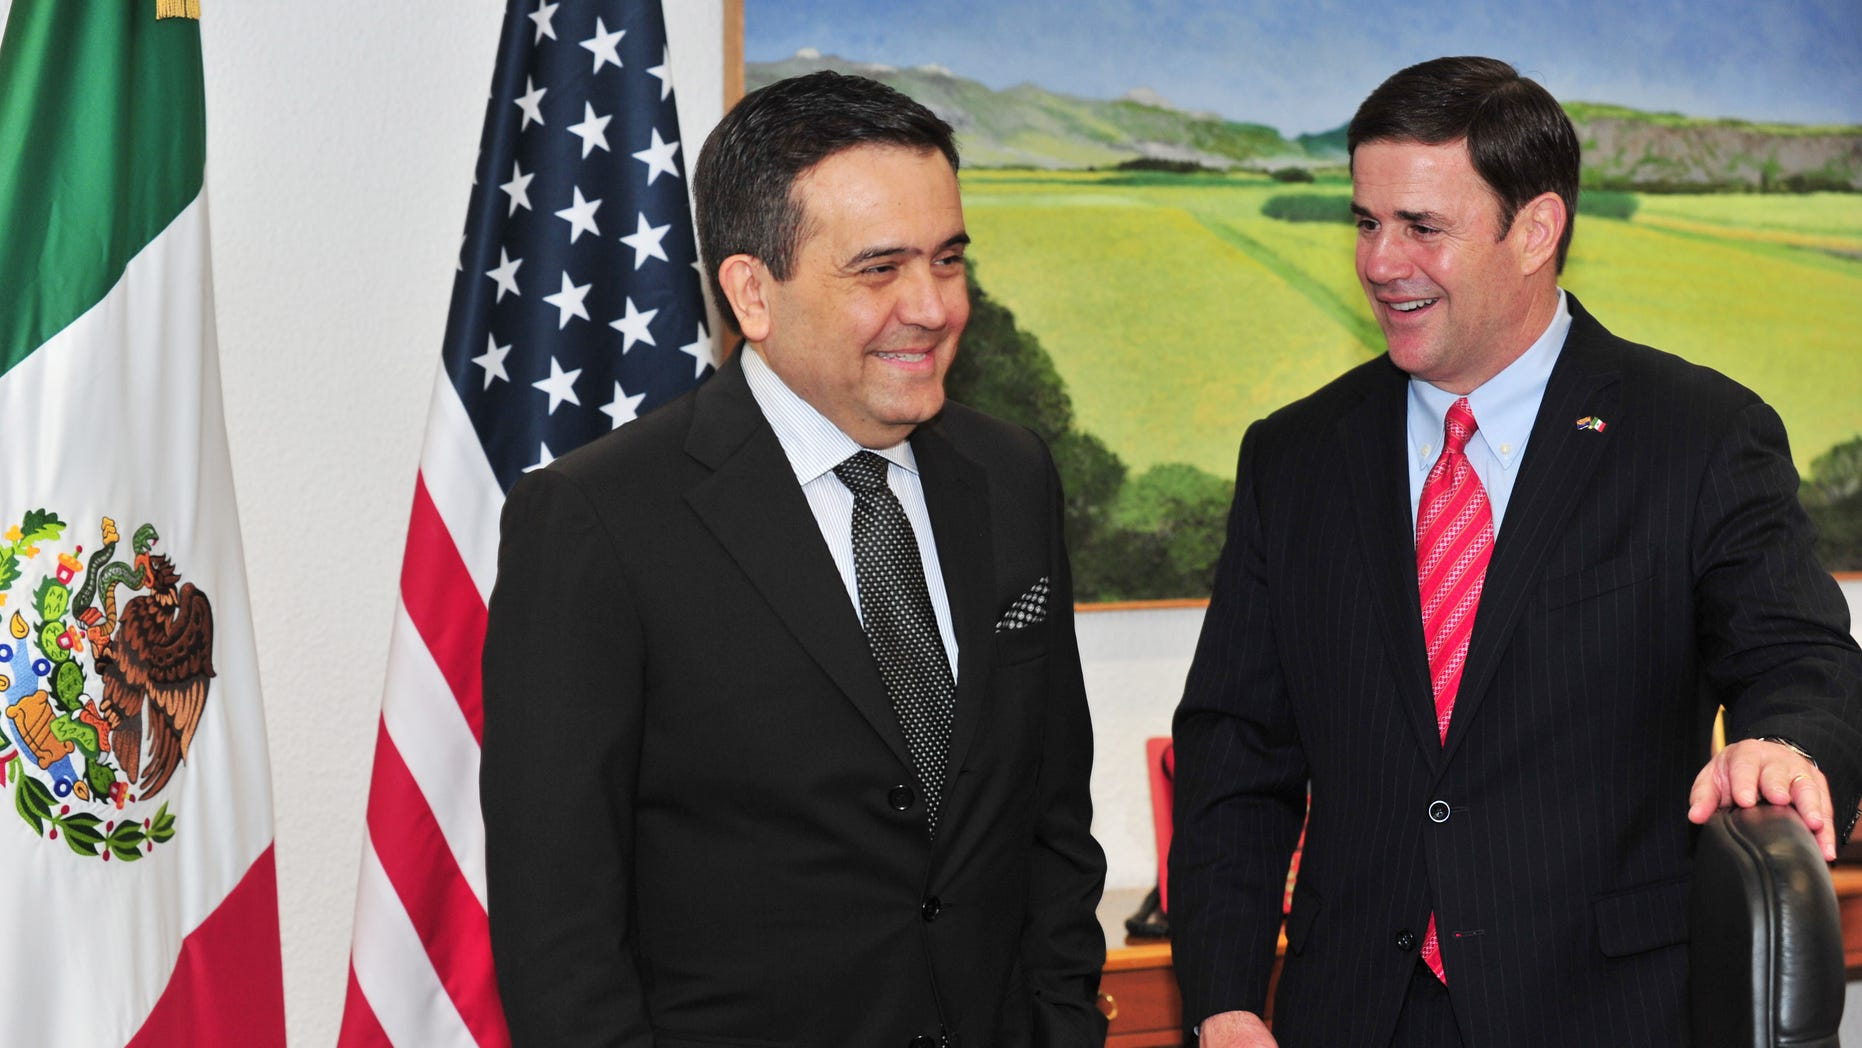 In this June 19, 2015 photo provided by the Office of Governor Doug Ducey, the Arizona governor, right, meets with Mexicoâs Secretary of the Economy, Ildefonso Guajardo Villarreal, also a graduate of Arizona State University, during Ducey's visit to Mexico City. It was Ducey's first trip to Mexico since his inauguration in January. (Victor Abreu/Office of Governor Doug Ducey, via AP)